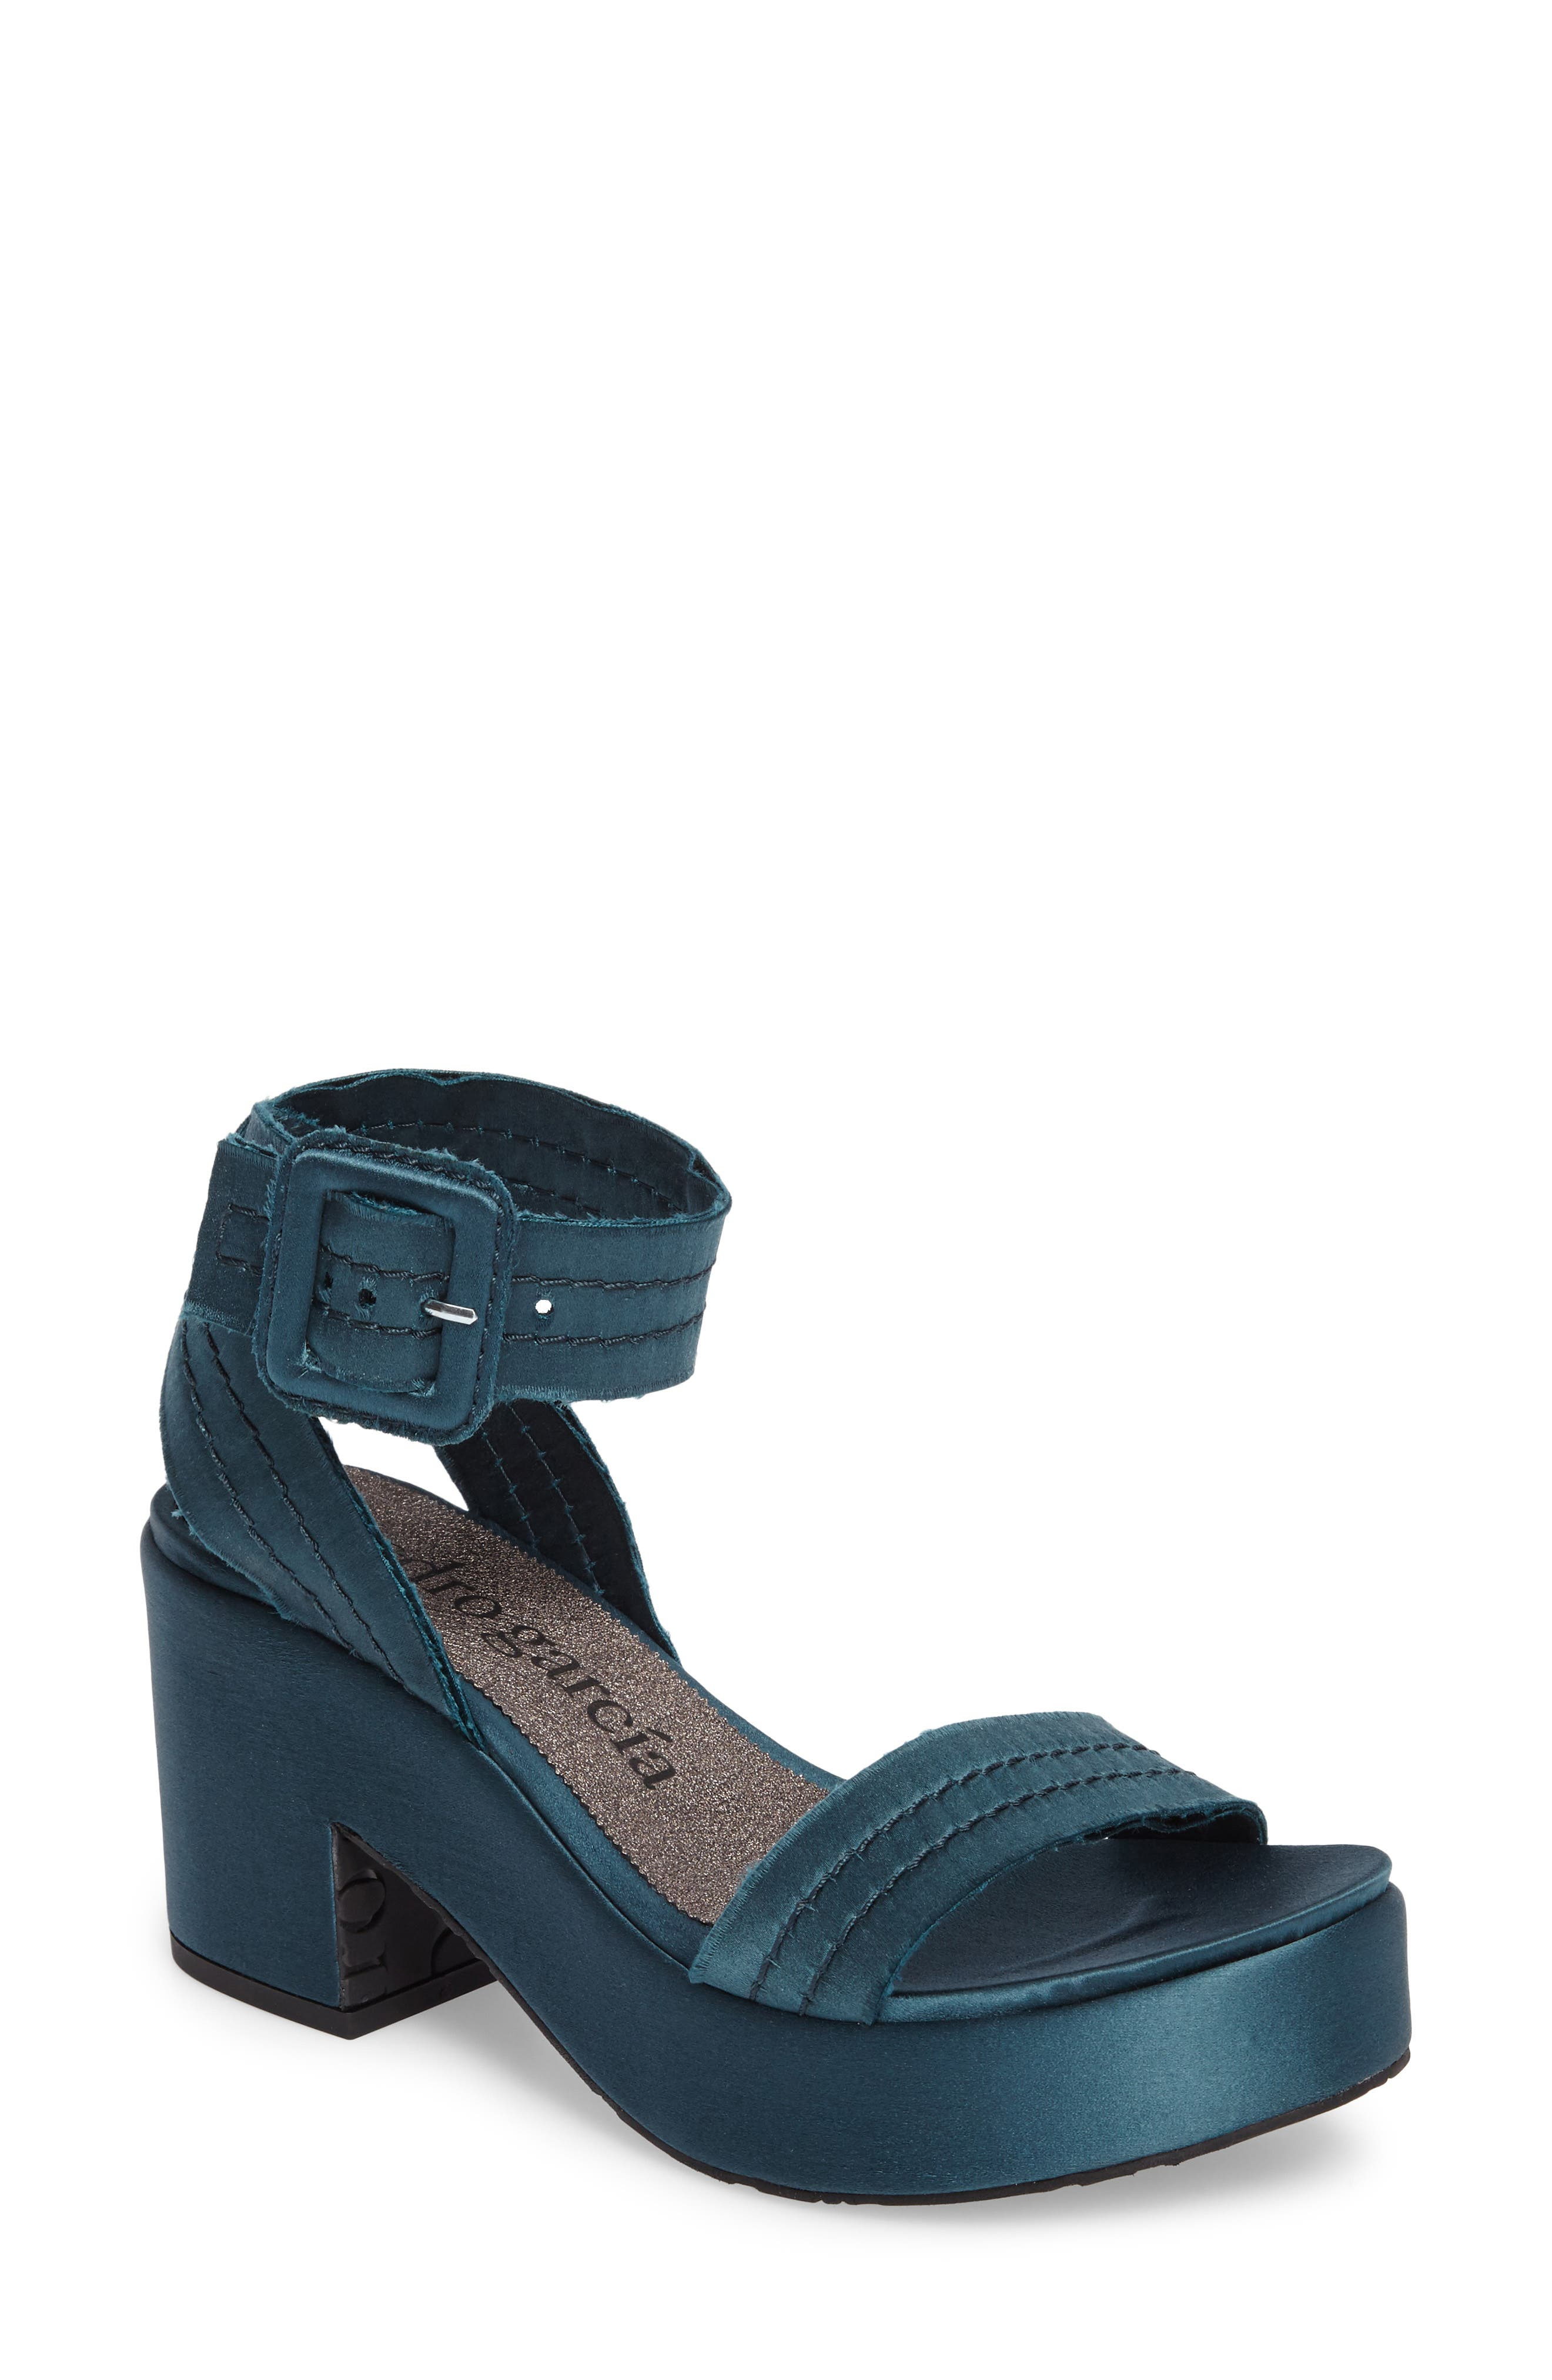 Davida Platform Sandal,                         Main,                         color, 400